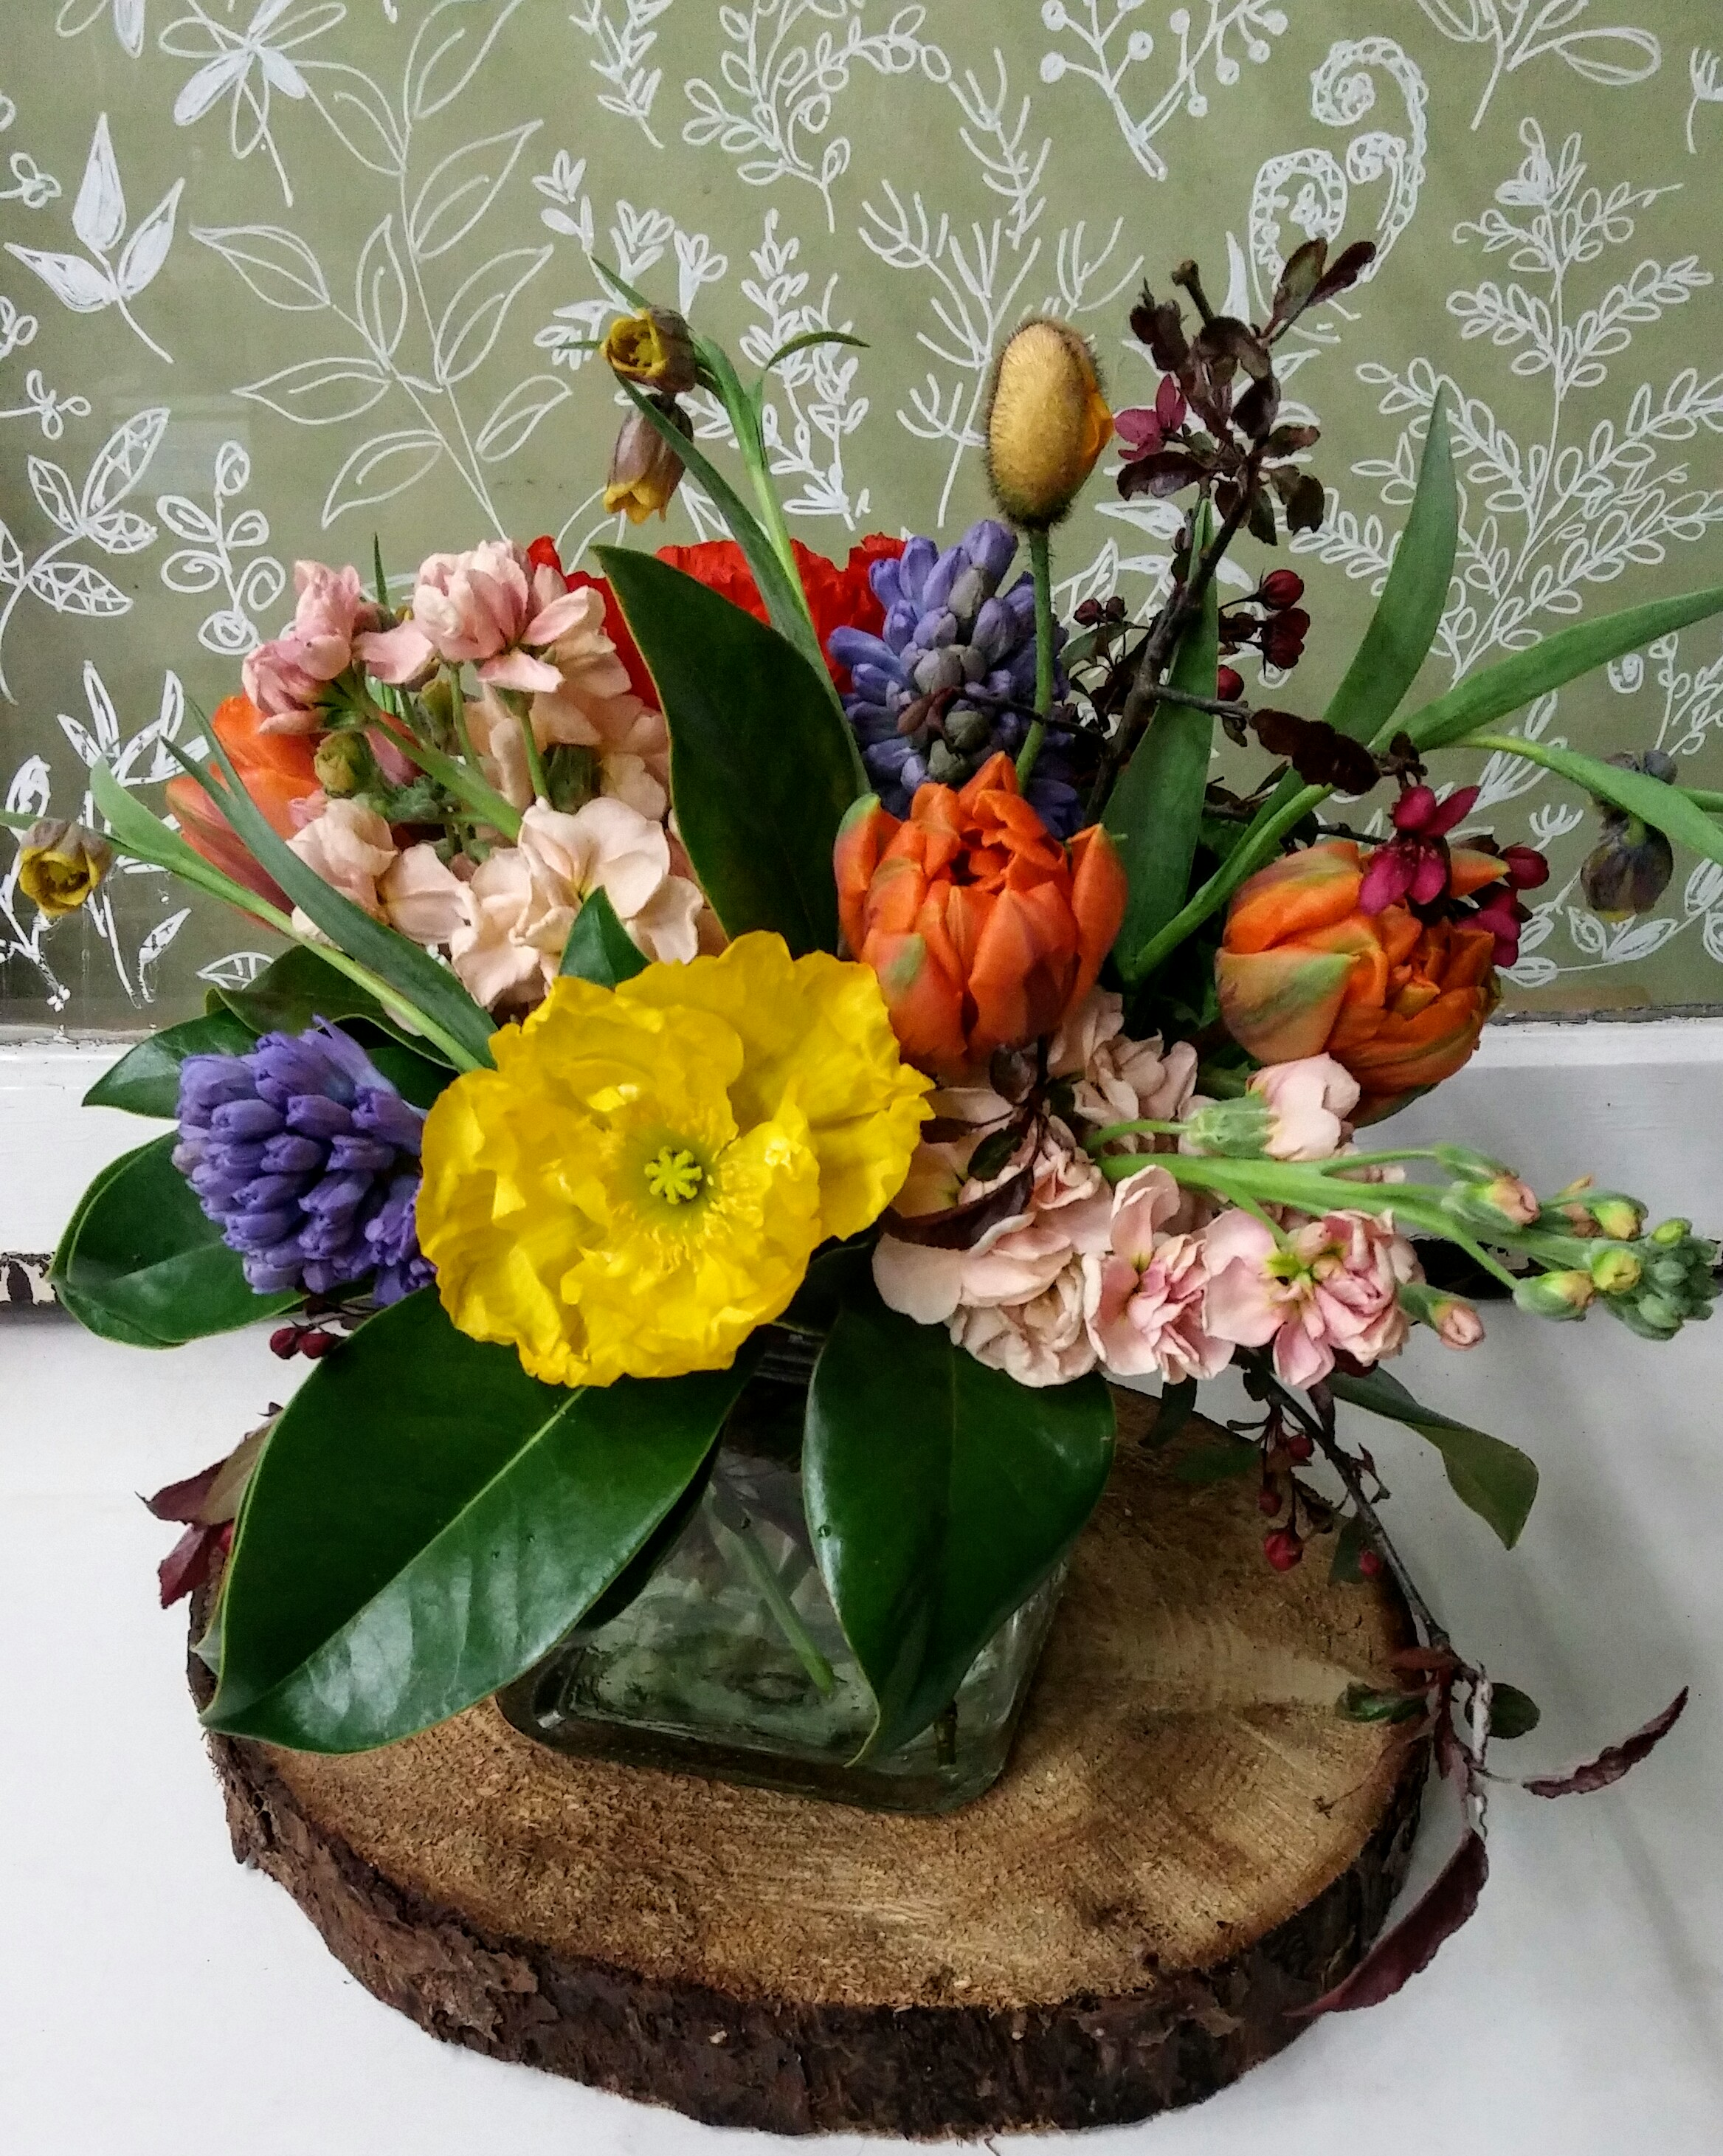 13. colorful spring with bulb flowers